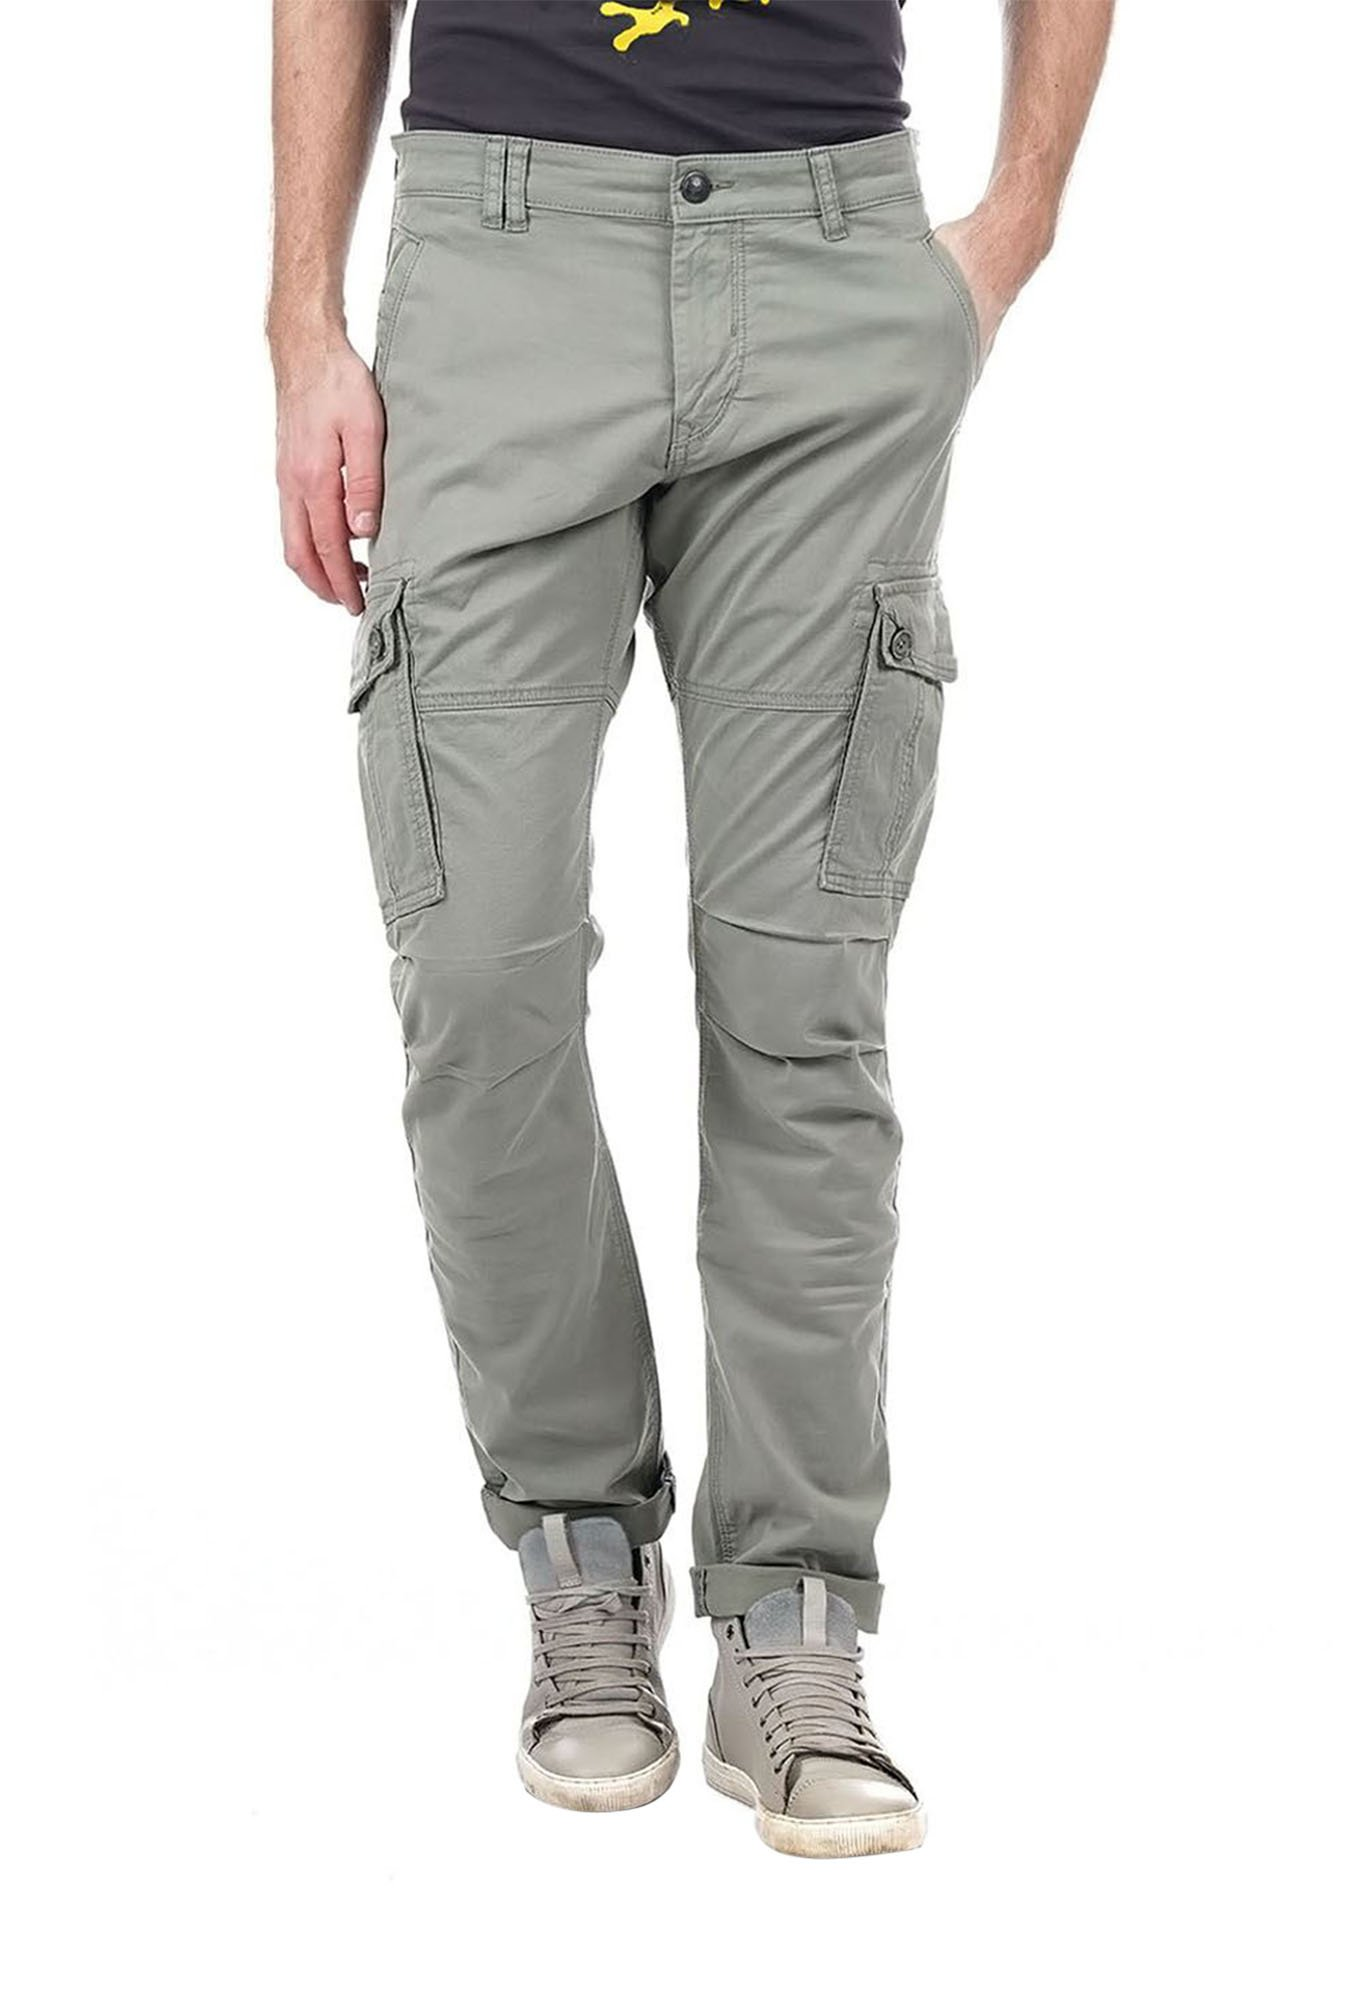 6e5457167 Buy Ed Hardy Grey Mid Rise Cargo Pants for Men Online @ Tata CLiQ